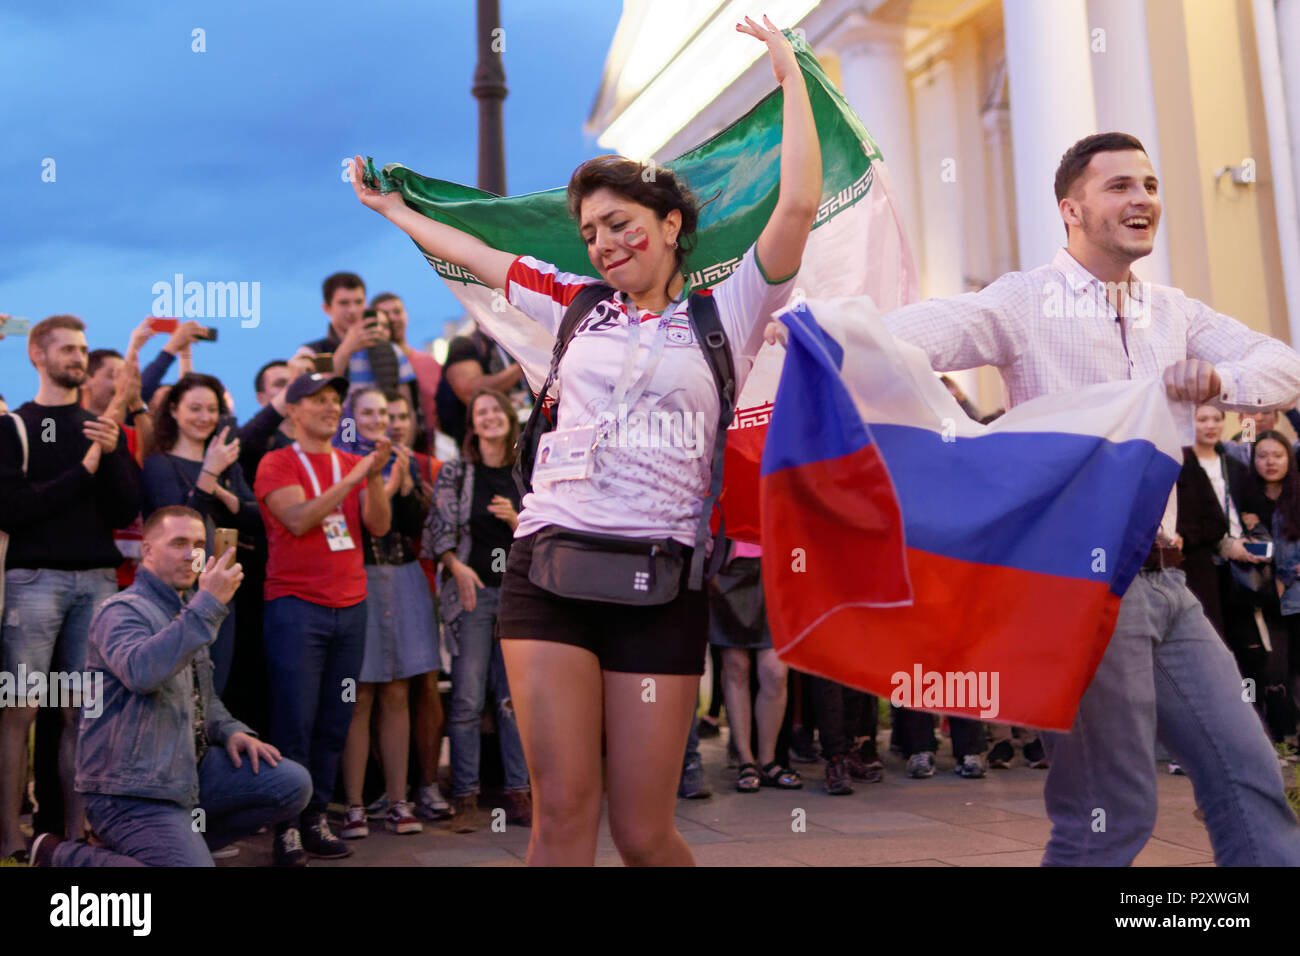 St. Petersburg, Russia - June 15, 2018: Iranian football fans dancing on Nevsky avenue in Saint Petersburg on the day of first match of FIFA World Cup - Stock Image